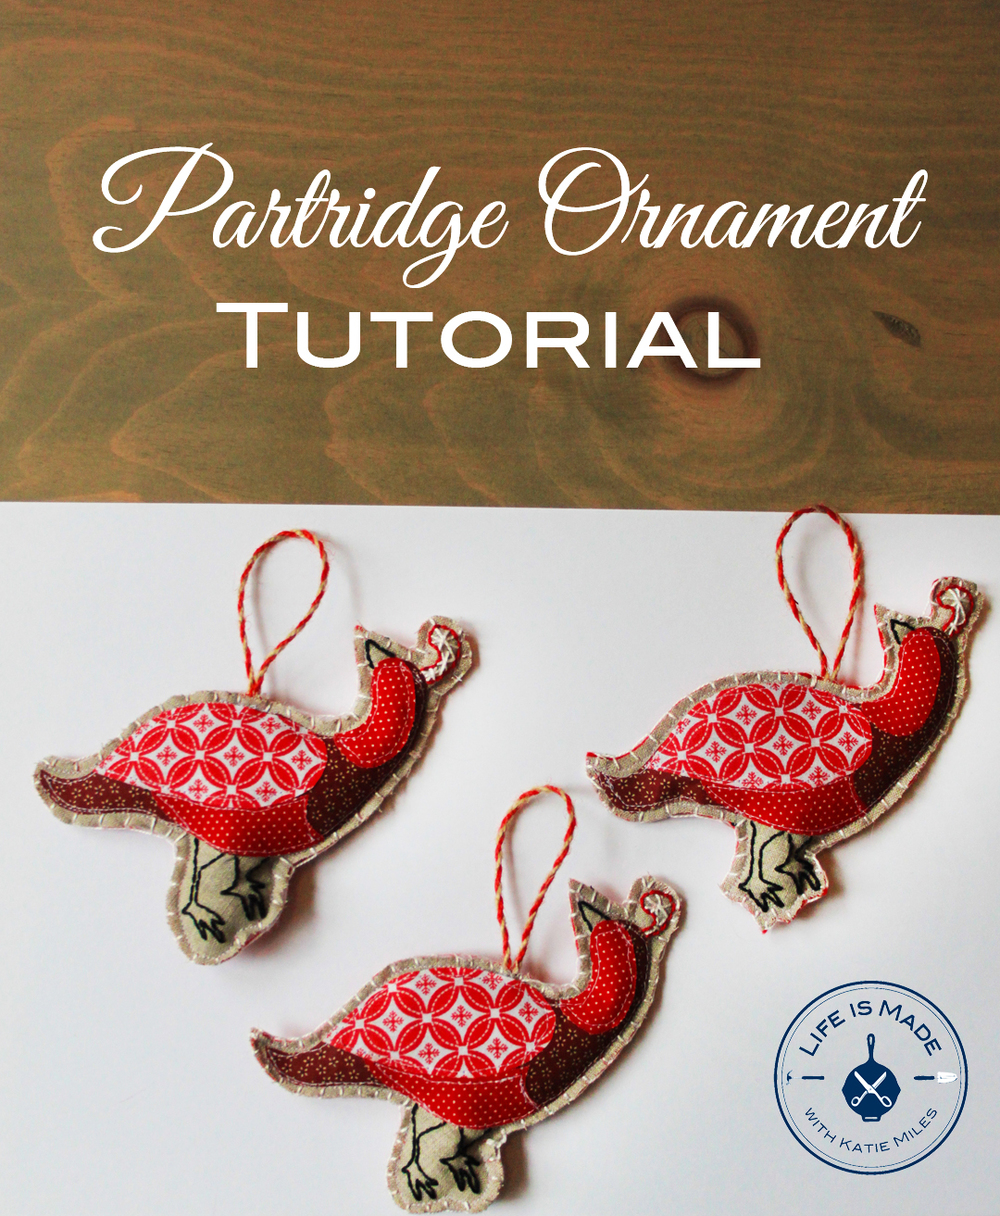 Tutorial for How to Make a Partridge Christmas Ornament // Life is Made with Katie Miles // www.lifeismade.com